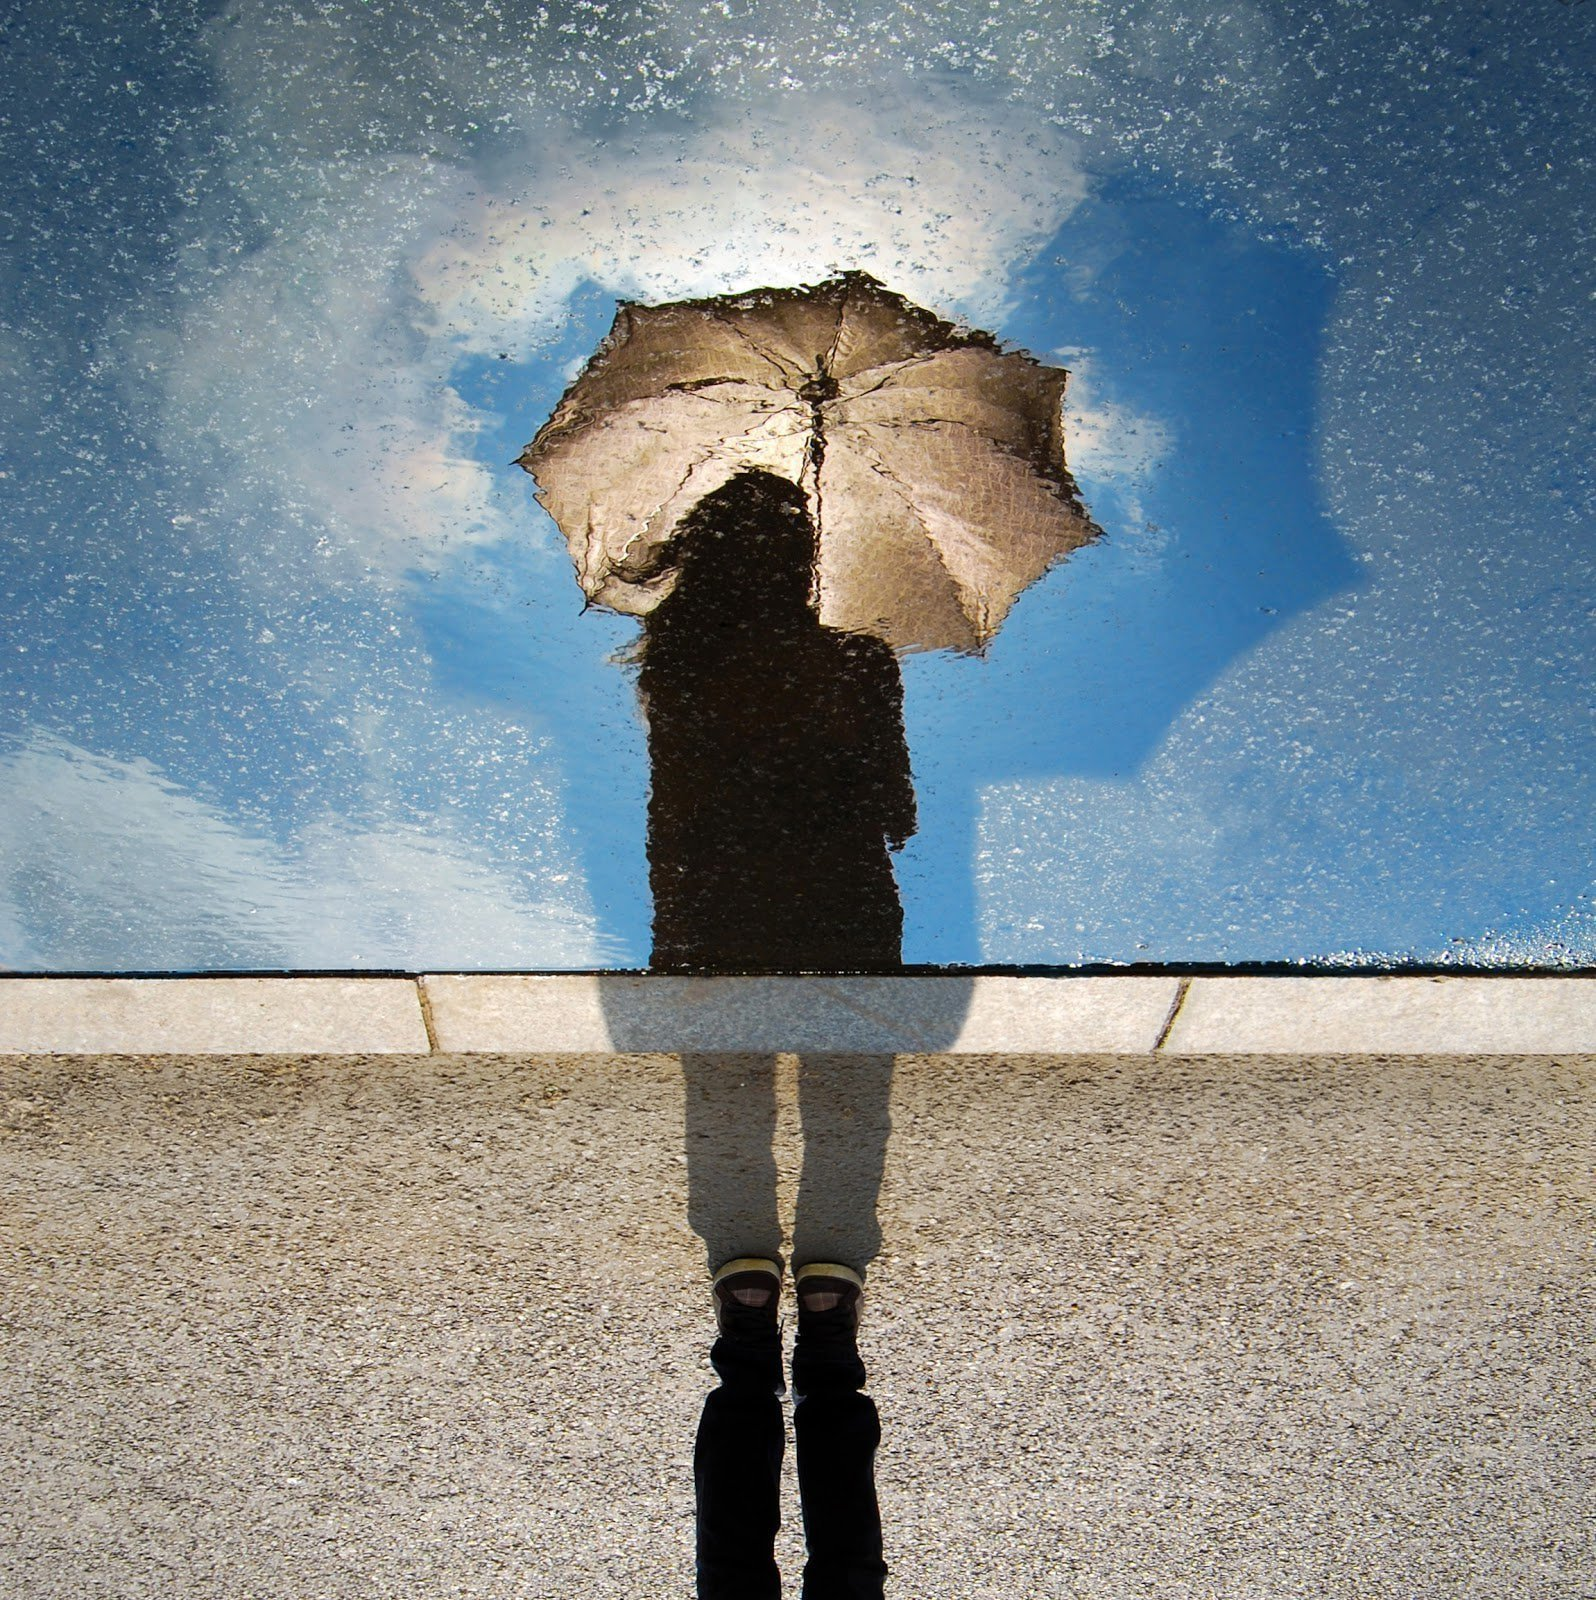 Reflection of a woman holding an umbrella by David Marcu